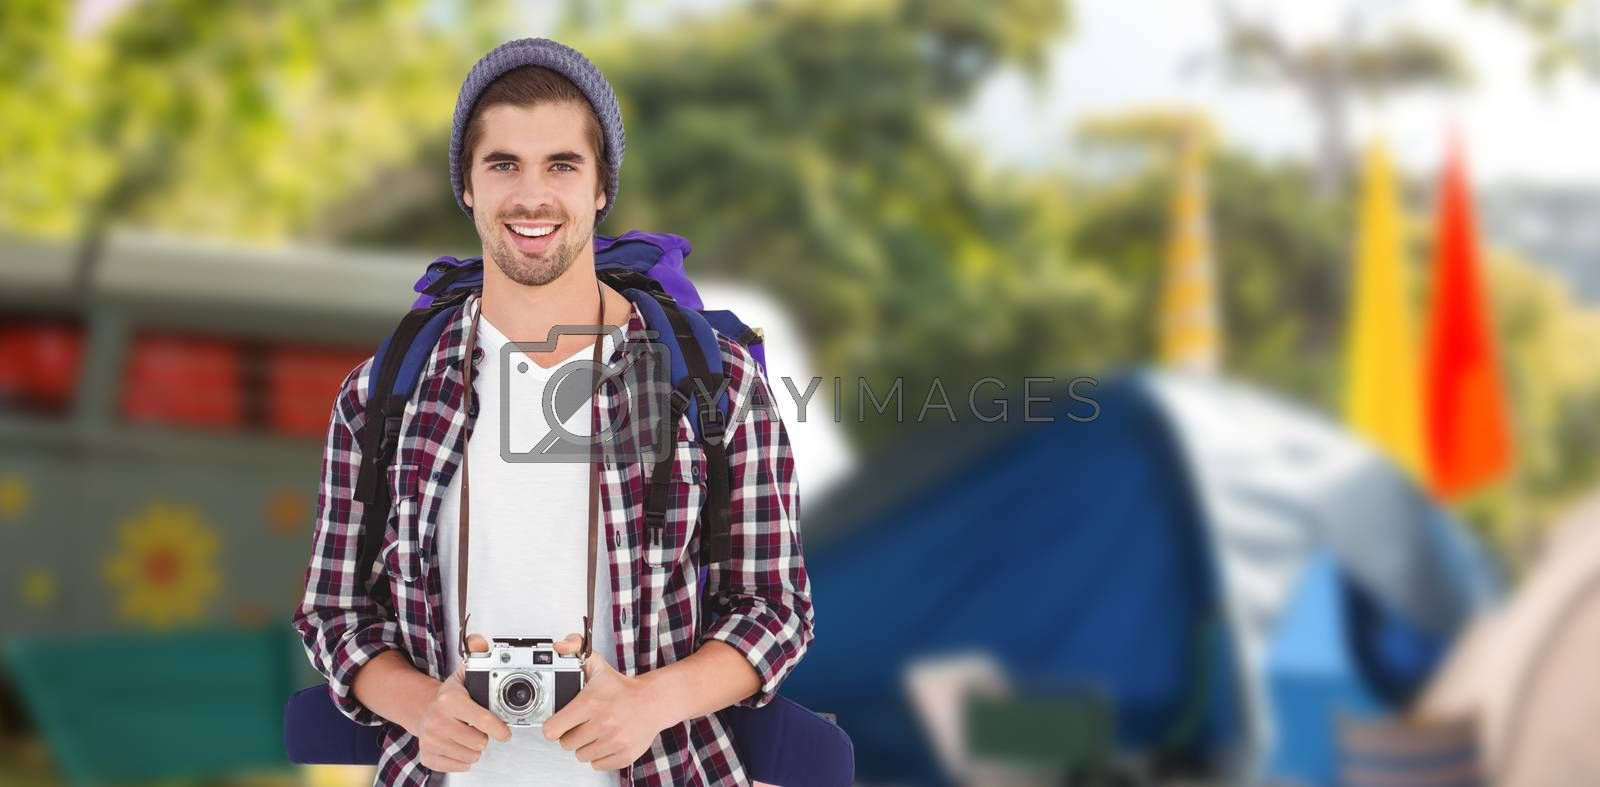 Portrait of happy man holding camera against empty campsite at music festival